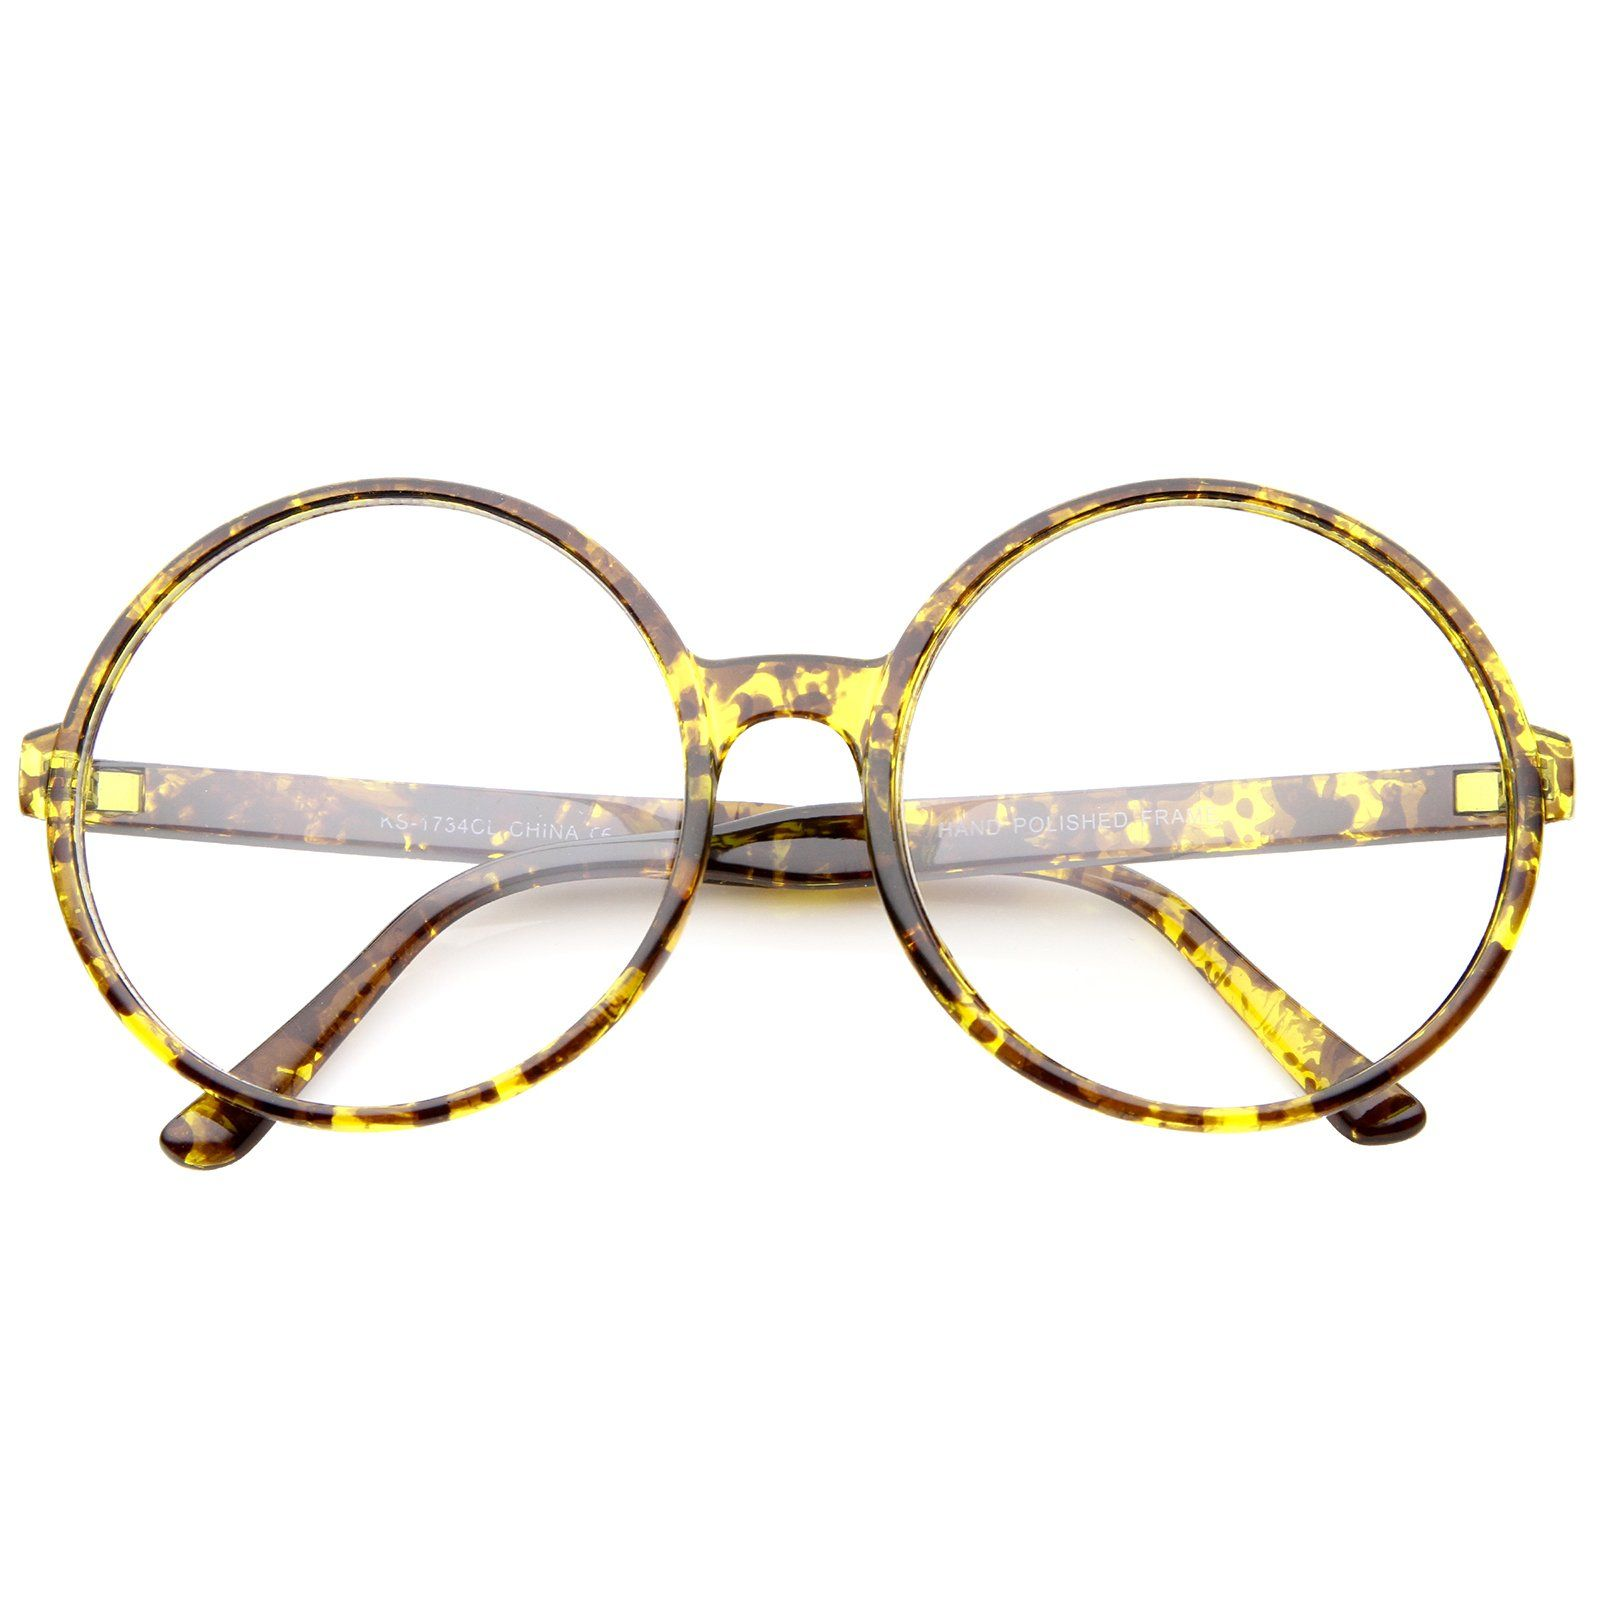 6ccdd39b2 Retro Oversize Clear Lens Round Spectacles Eyewear Glasses 60mm in ...